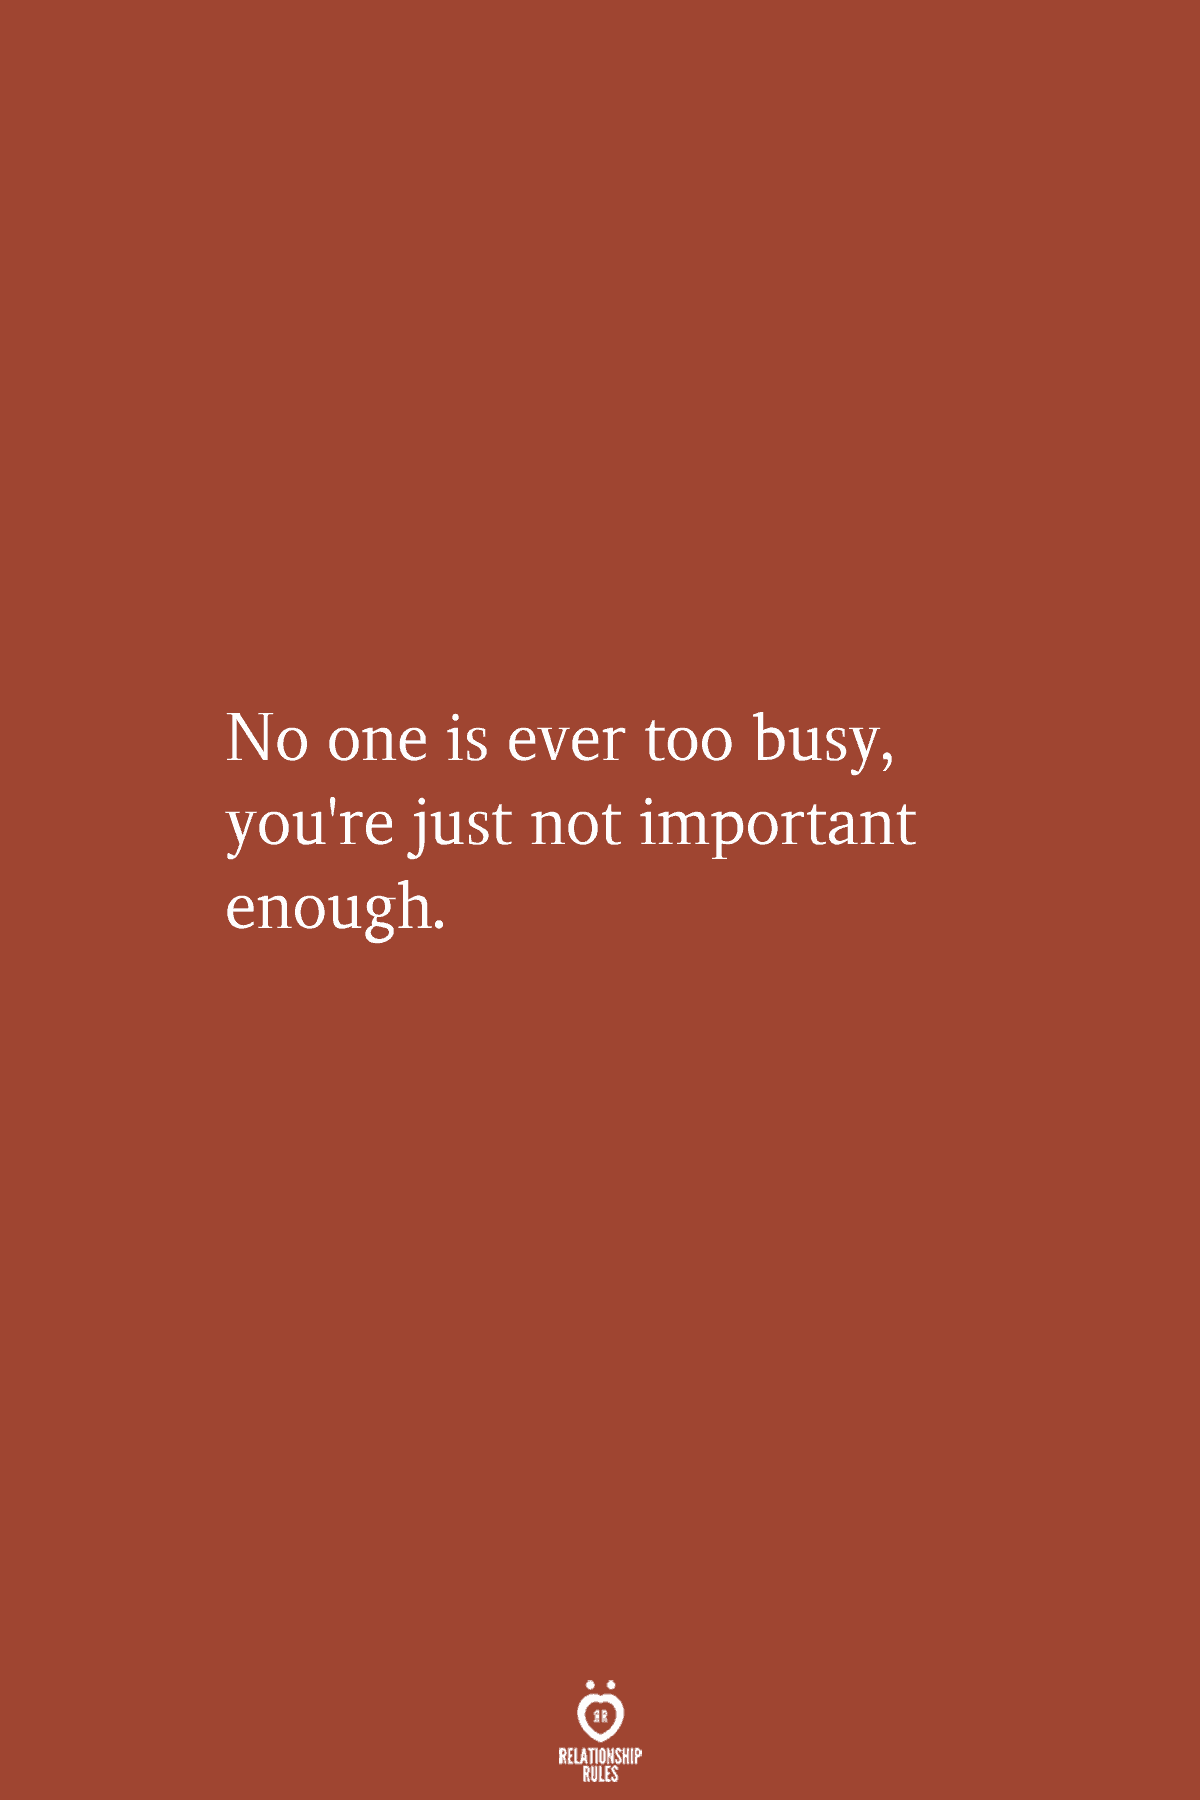 No One Is Ever Too Busy, You're Just Not Important Enough | Relationship Rules